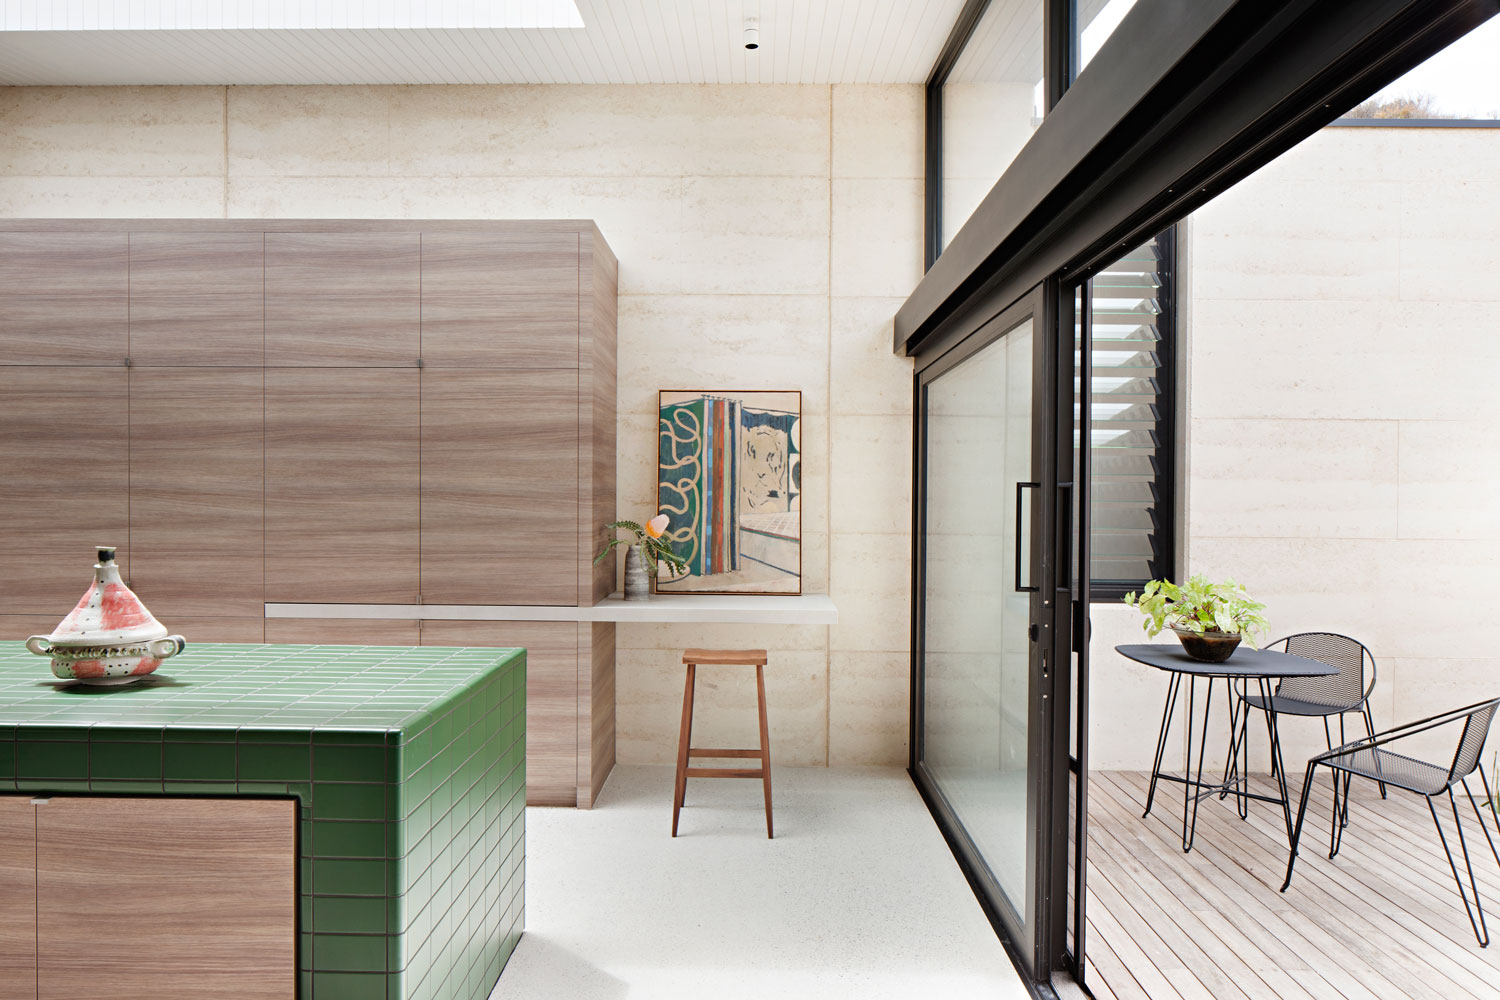 Layer House in Regional Victoria by Robson Rak | Yellowtrace